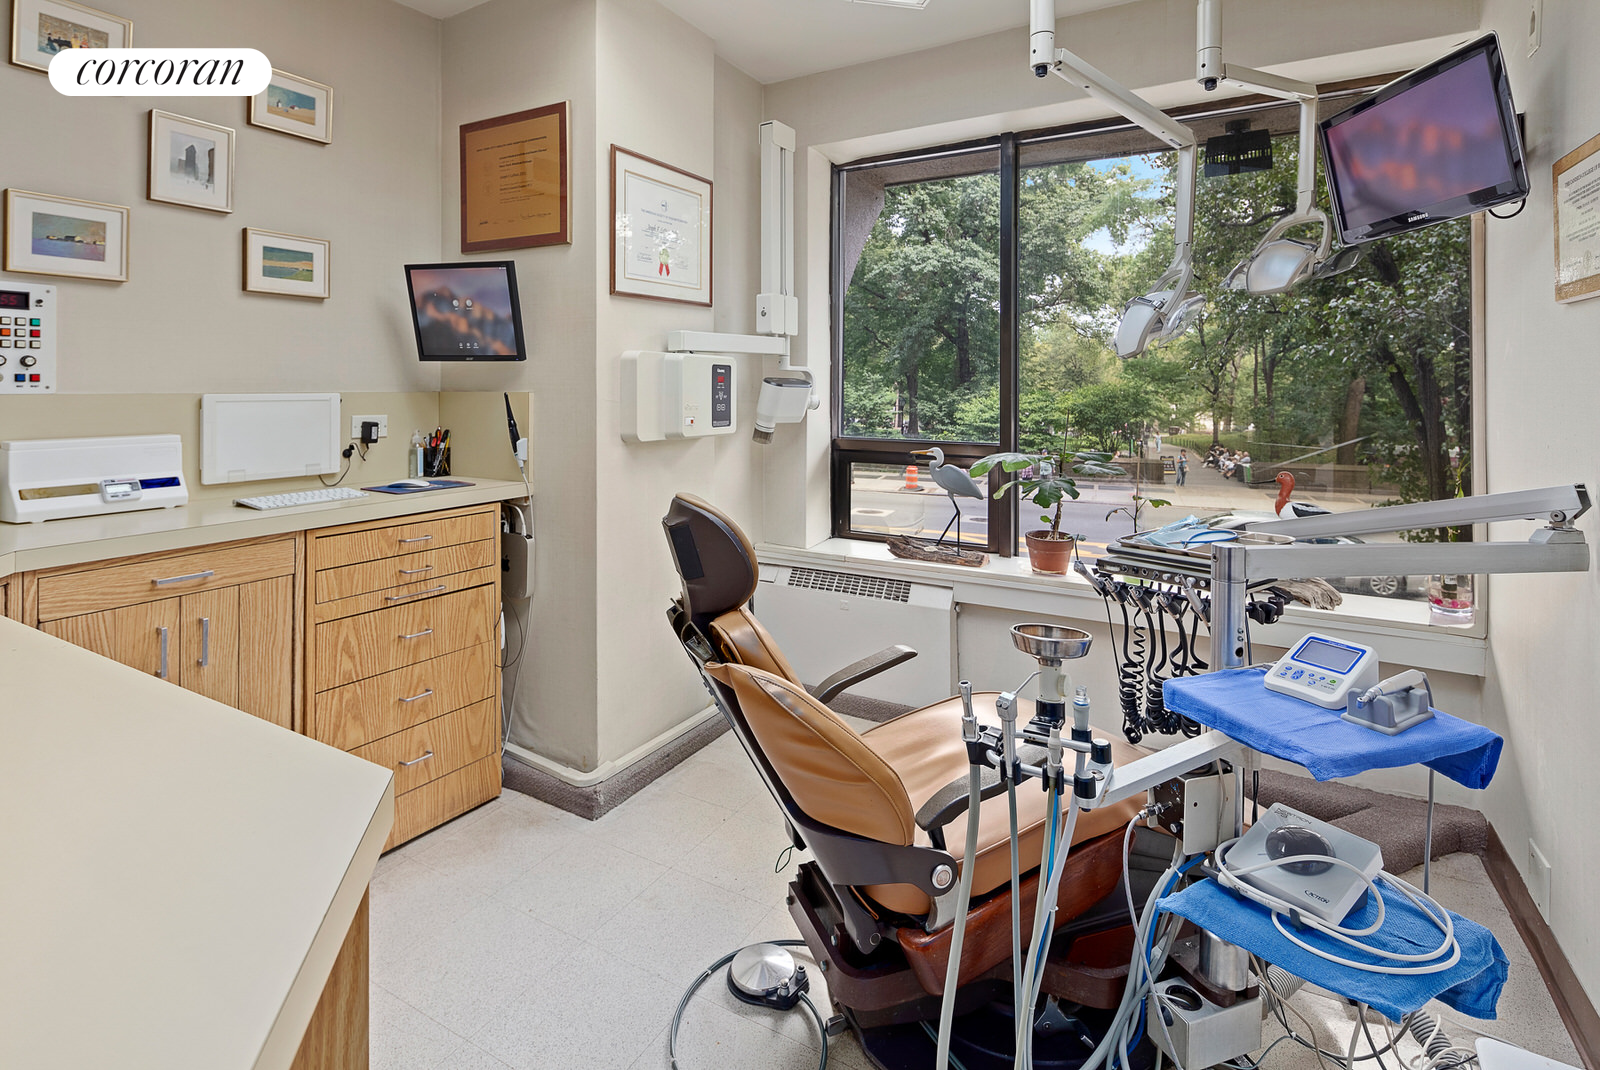 200 Central Park South Dental Office Central Park South New York NY 10019